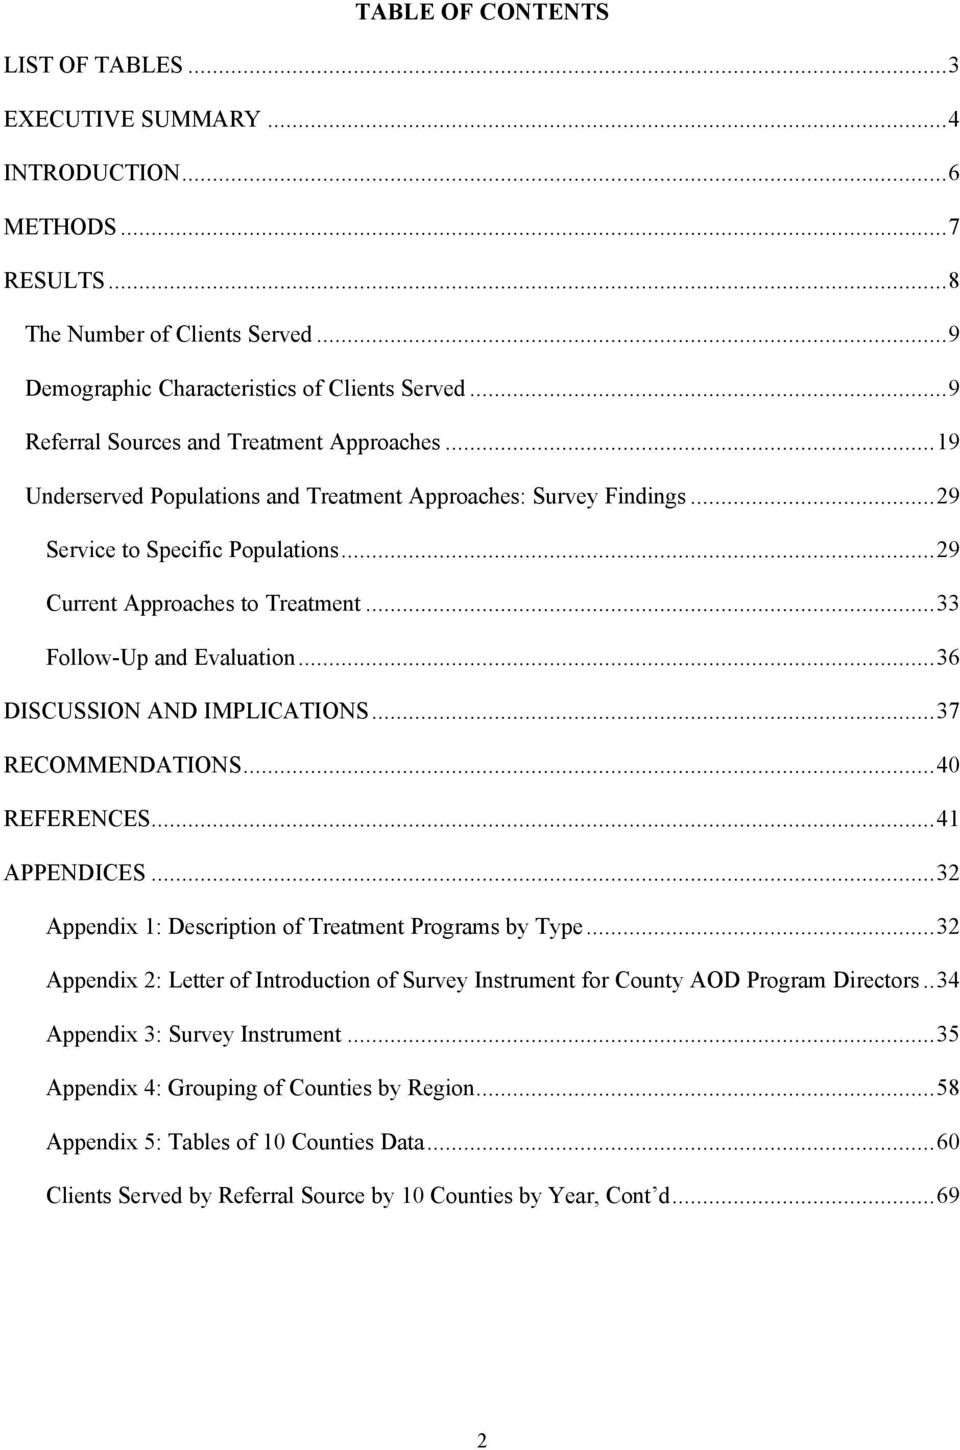 ..33 Follow-Up and Evaluation...36 DISCUSSION AND IMPLICATIONS...37 RECOMMENDATIONS...40 REFERENCES...41 APPENDICES...32 Appendix 1: Description of Treatment Programs by Type.